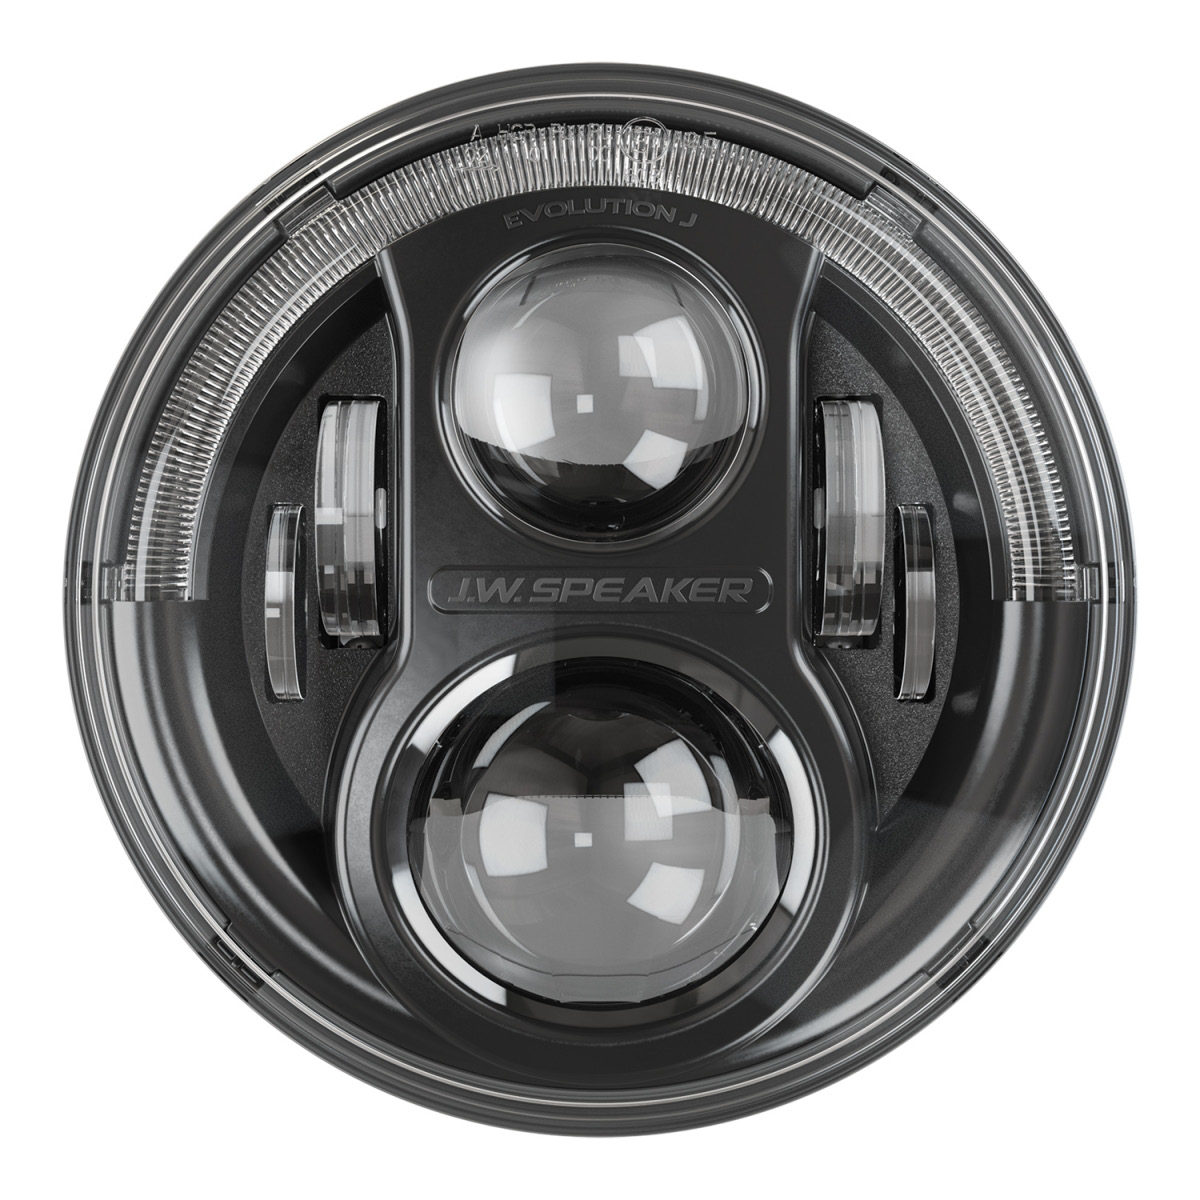 J.W. Speaker 8700 Evolution J LED-Scheinwerfer